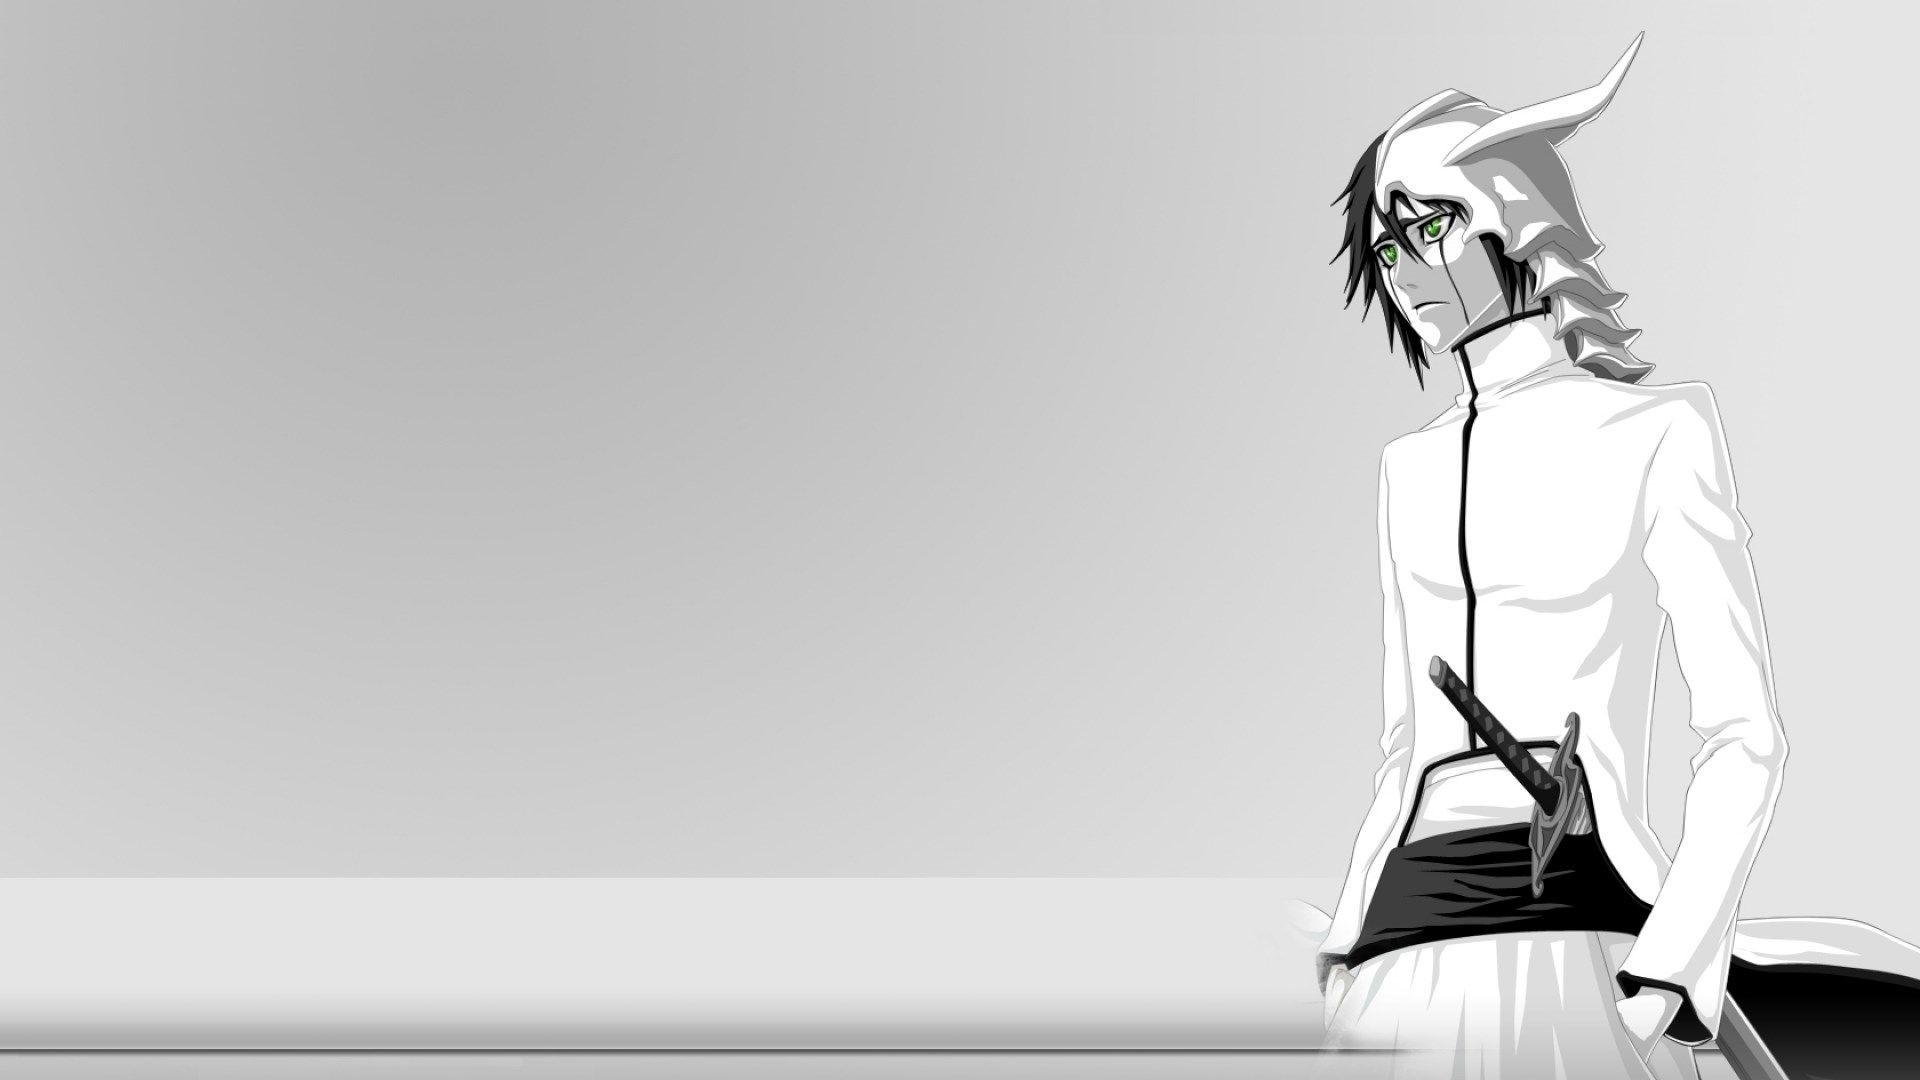 Anime Black And White PC Wallpaper HD